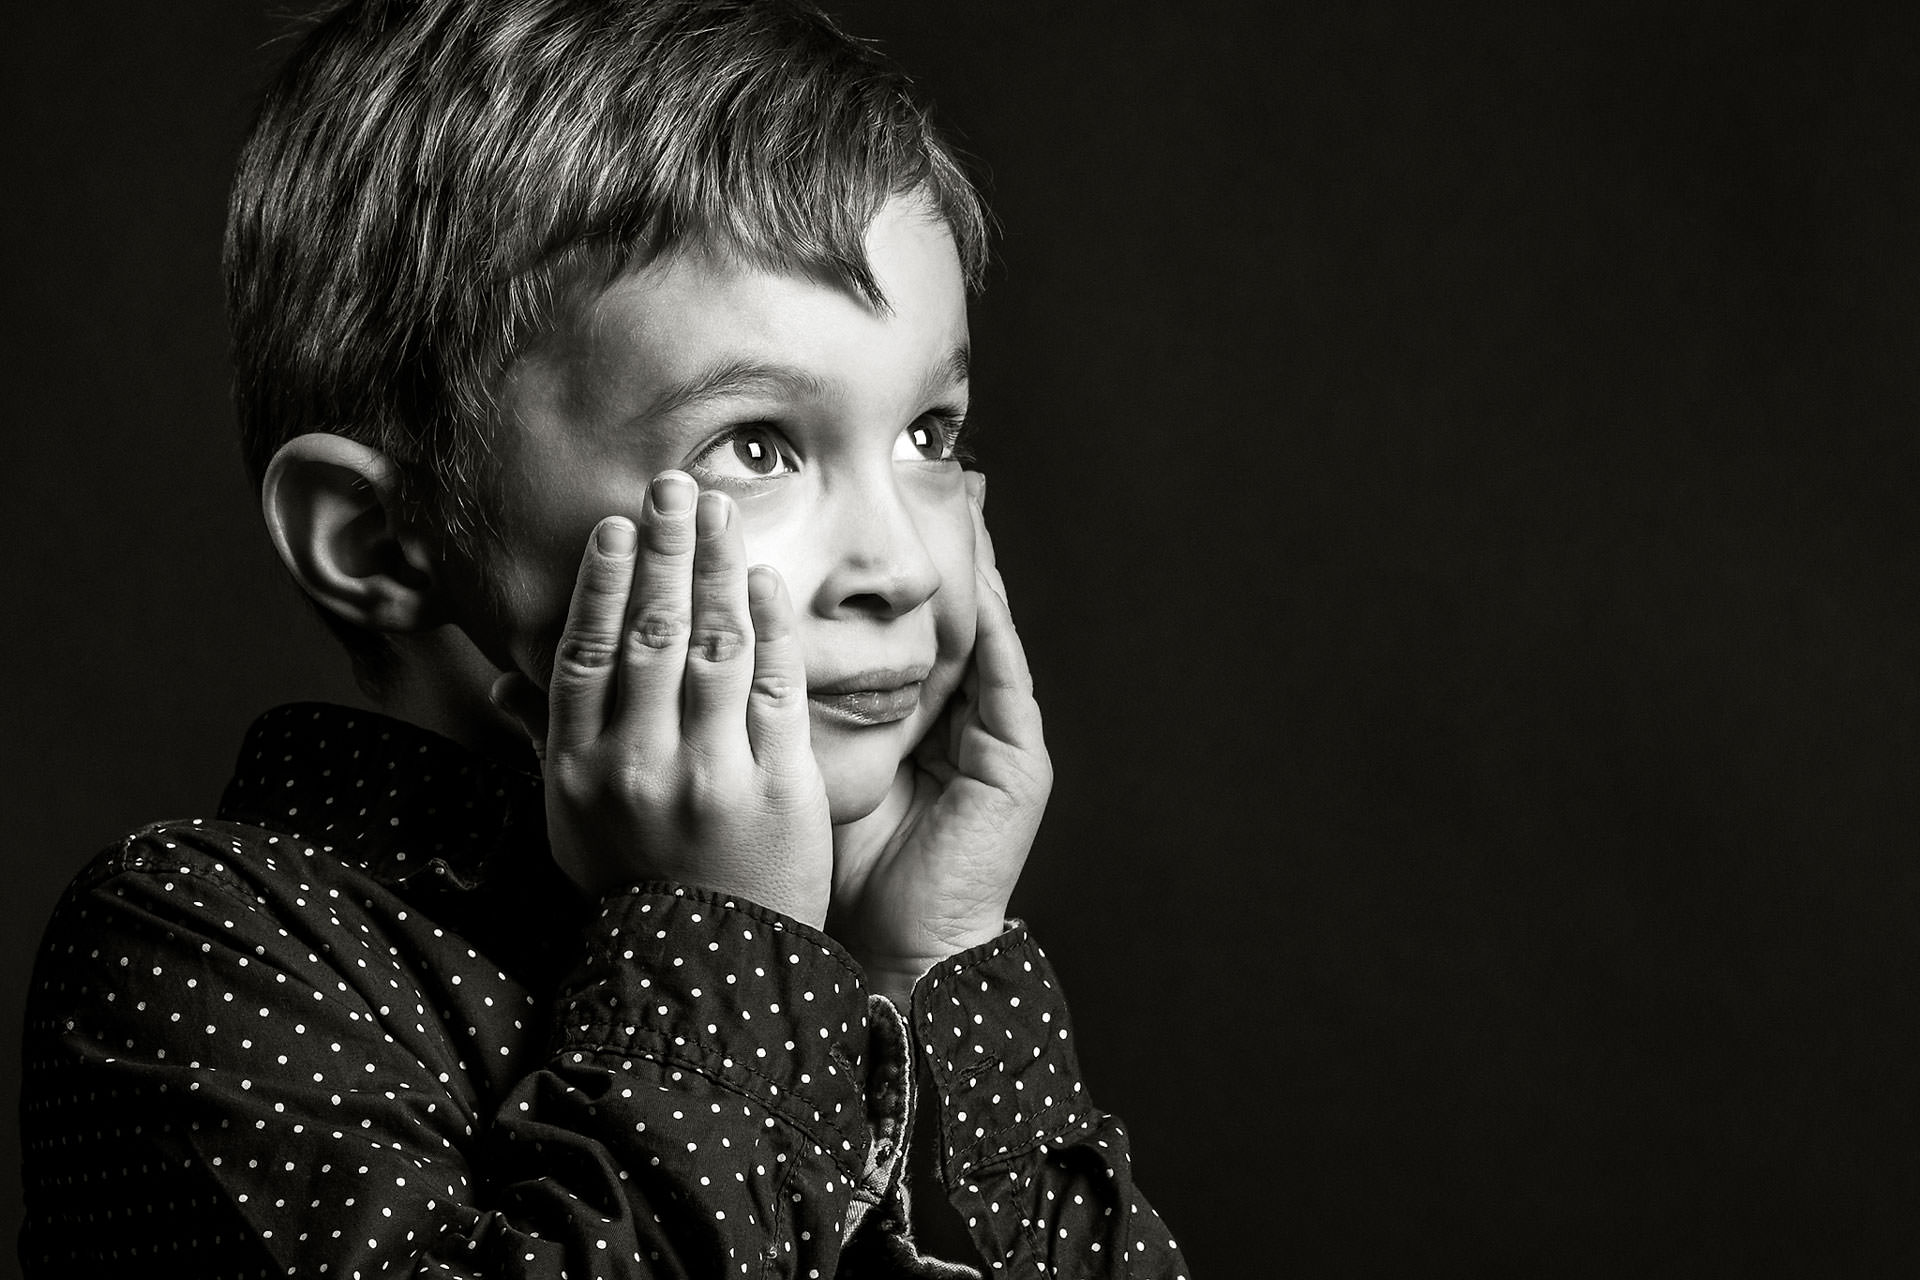 a young boy with his hands on either side of his face looking upward against a black backdrop by top family portrait photographer sean leblanc